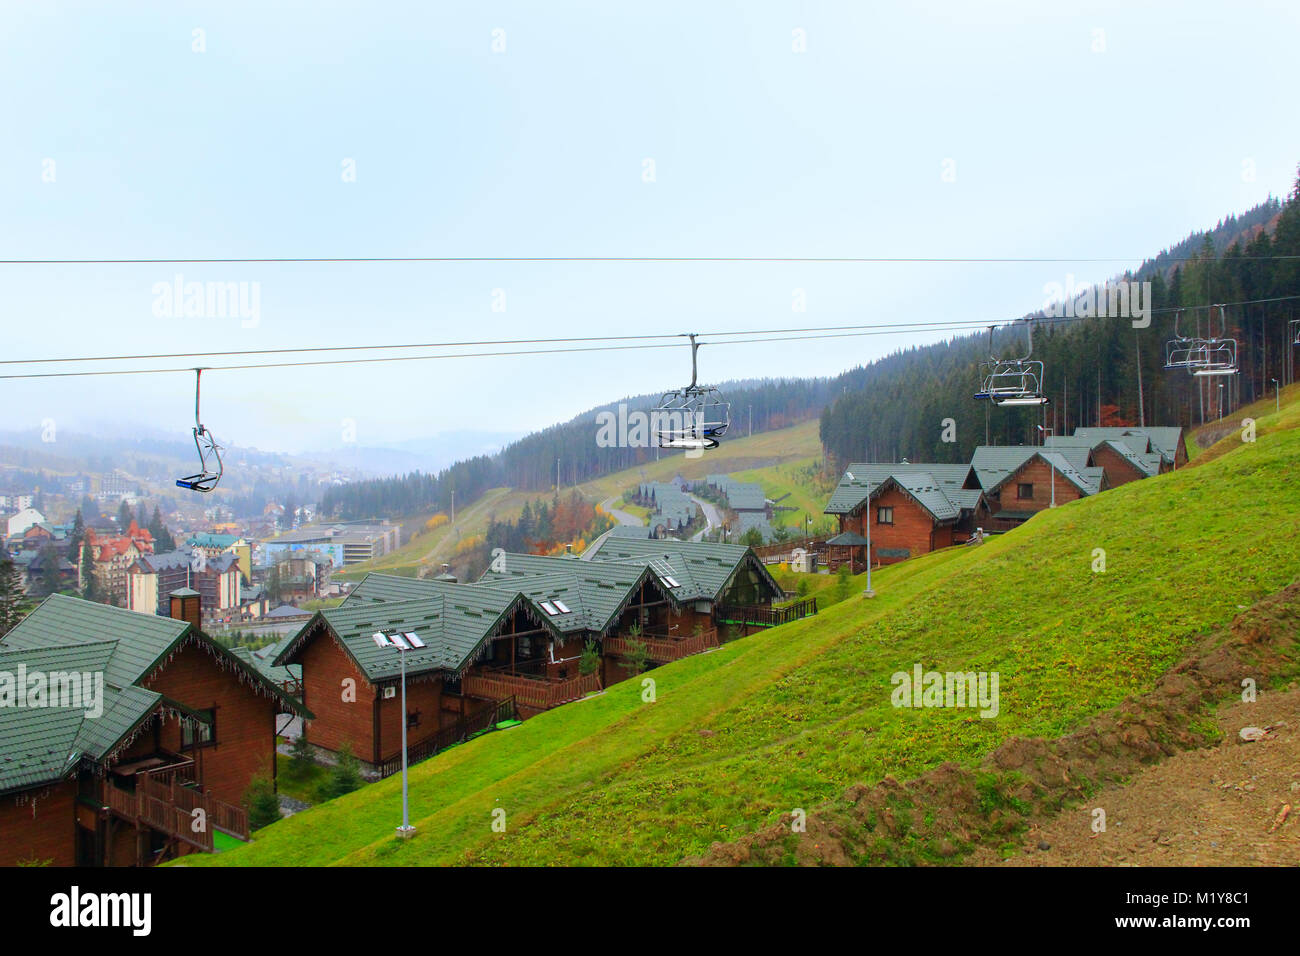 bukovel resort in ivano-frankivsk region ukraine with funicular and